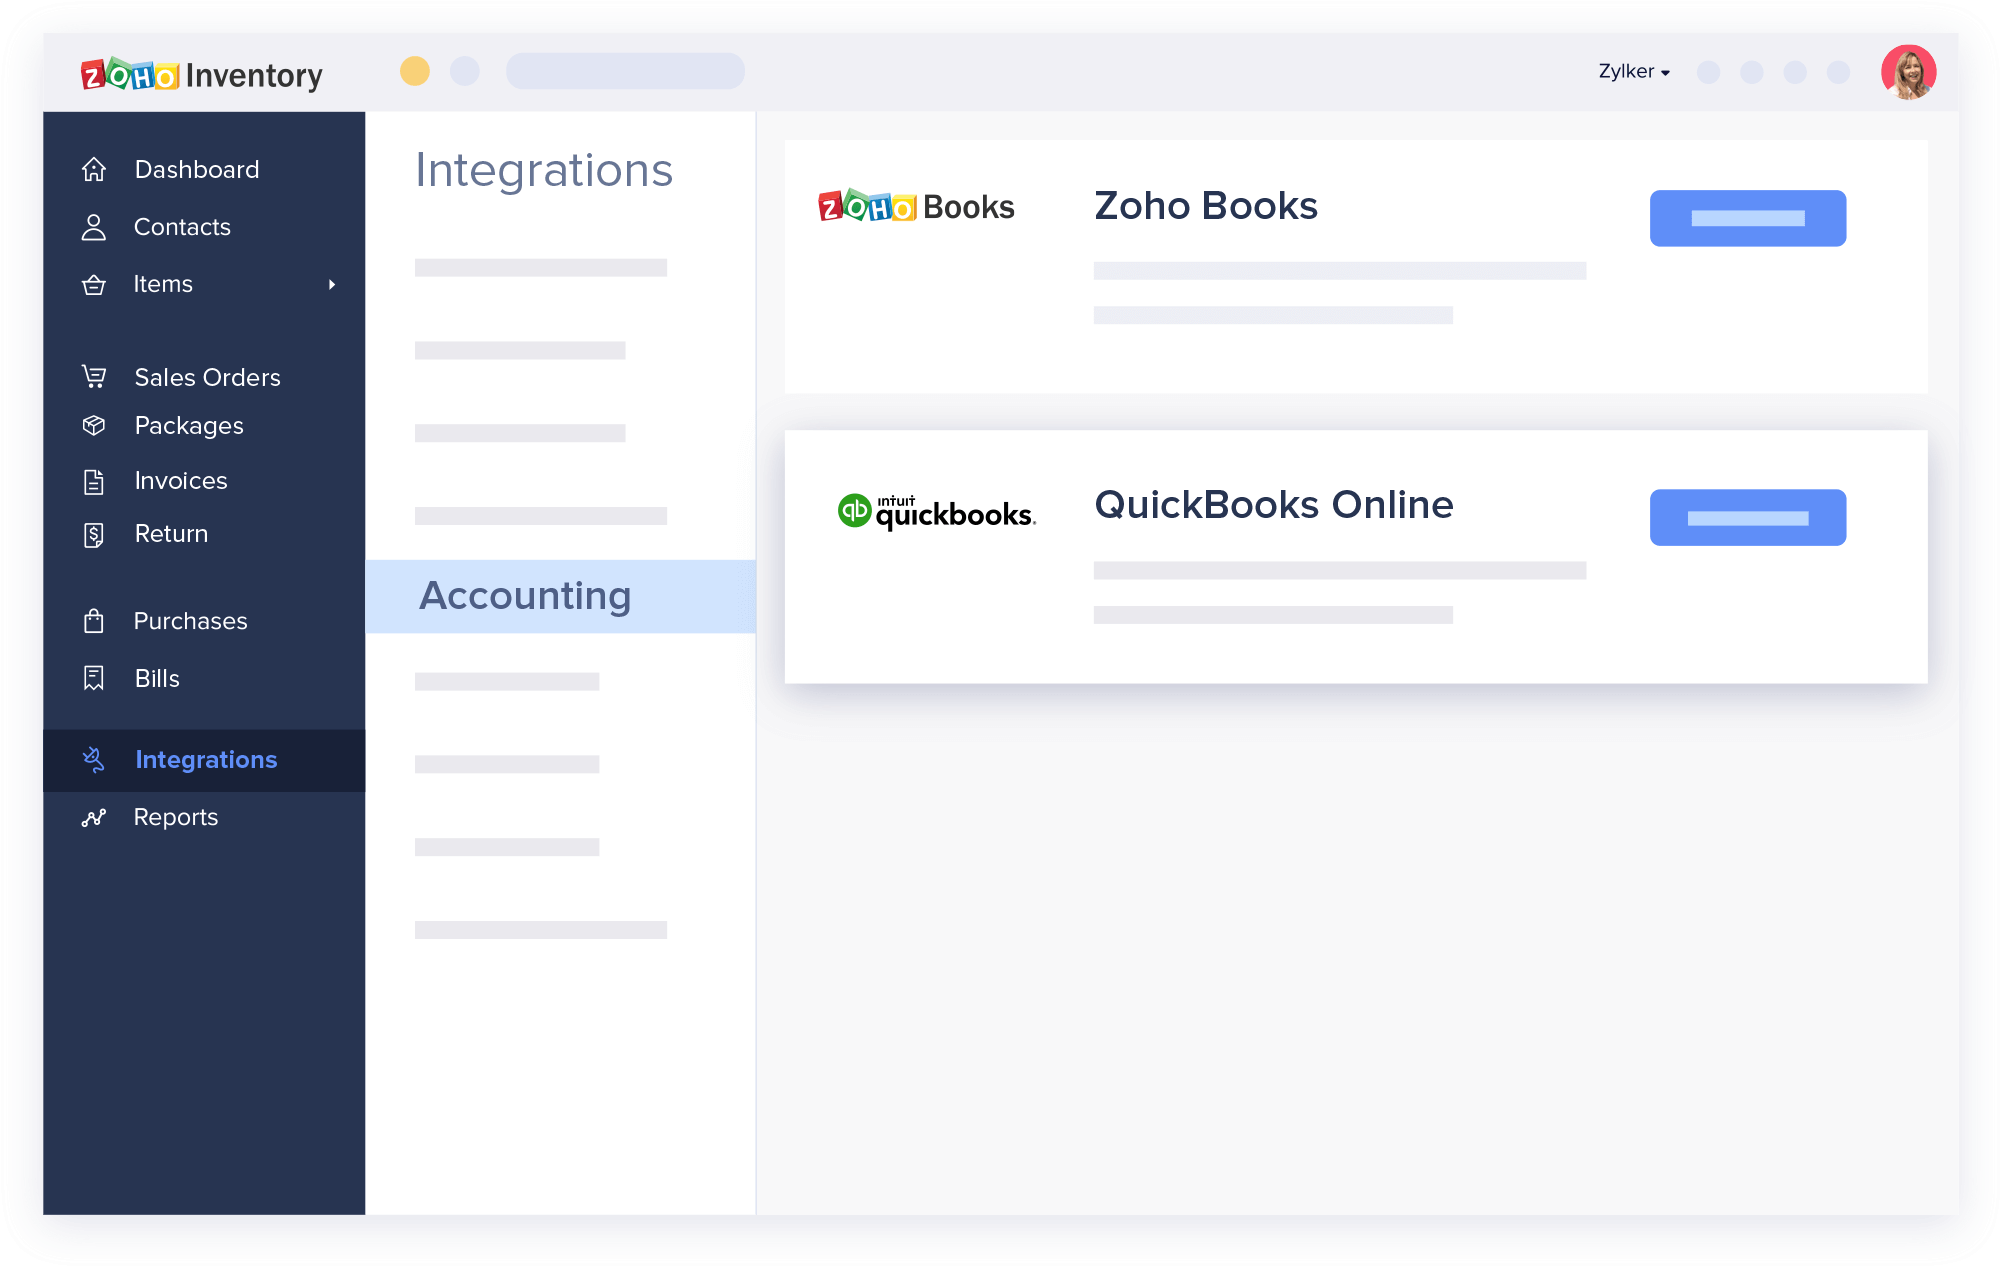 QuickBooks Inventory Management Software - Zoho Inventory Integration